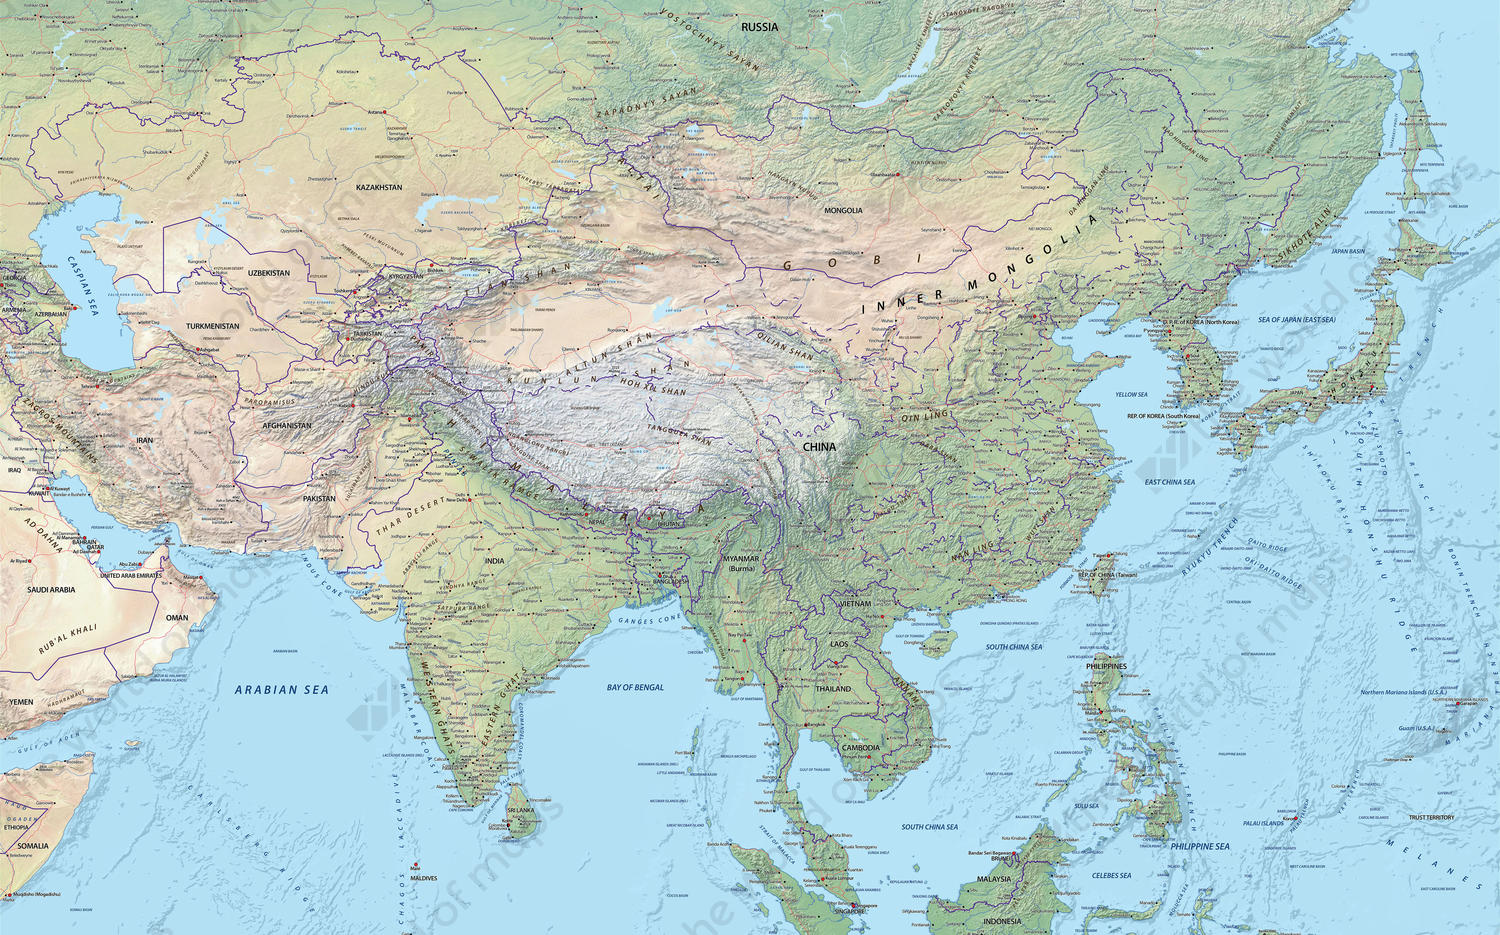 Digital Map Central Asia Physical 643 | The World of Maps.com